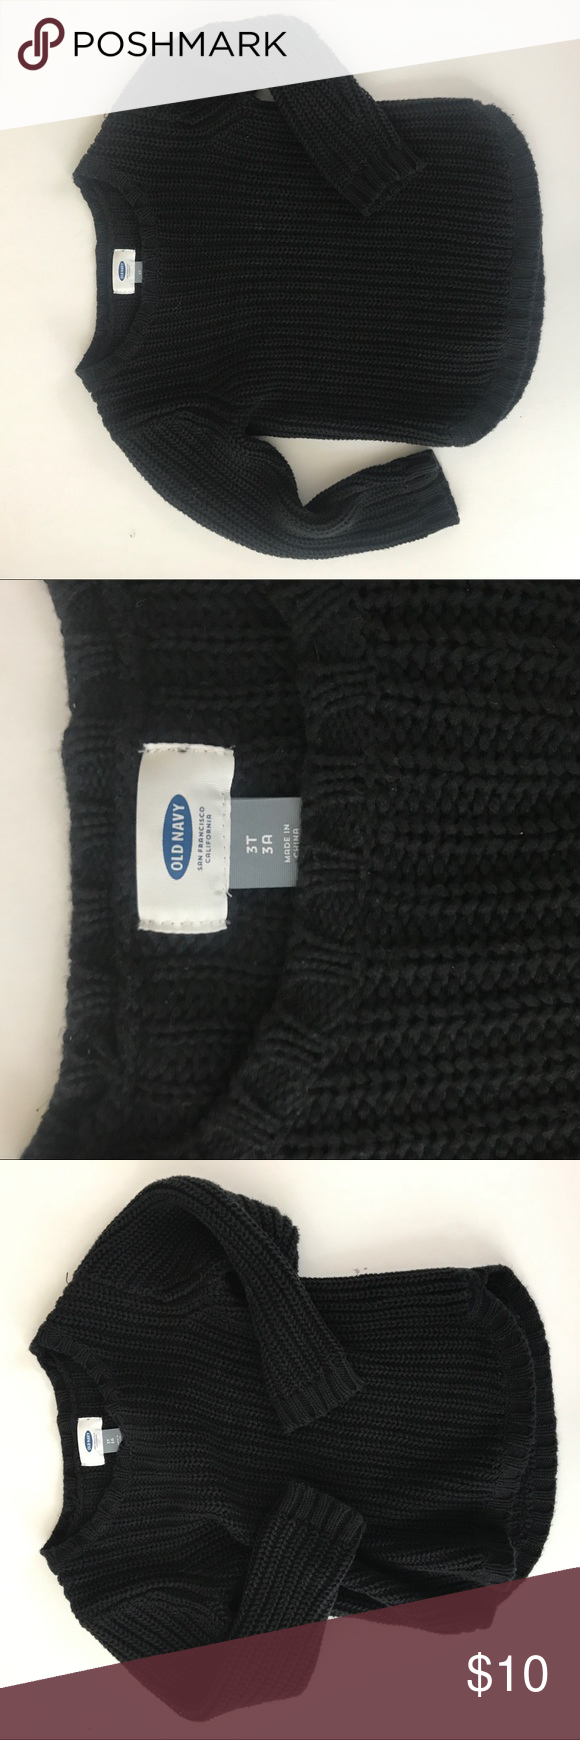 Old Navy Black Sweater Kids 3T